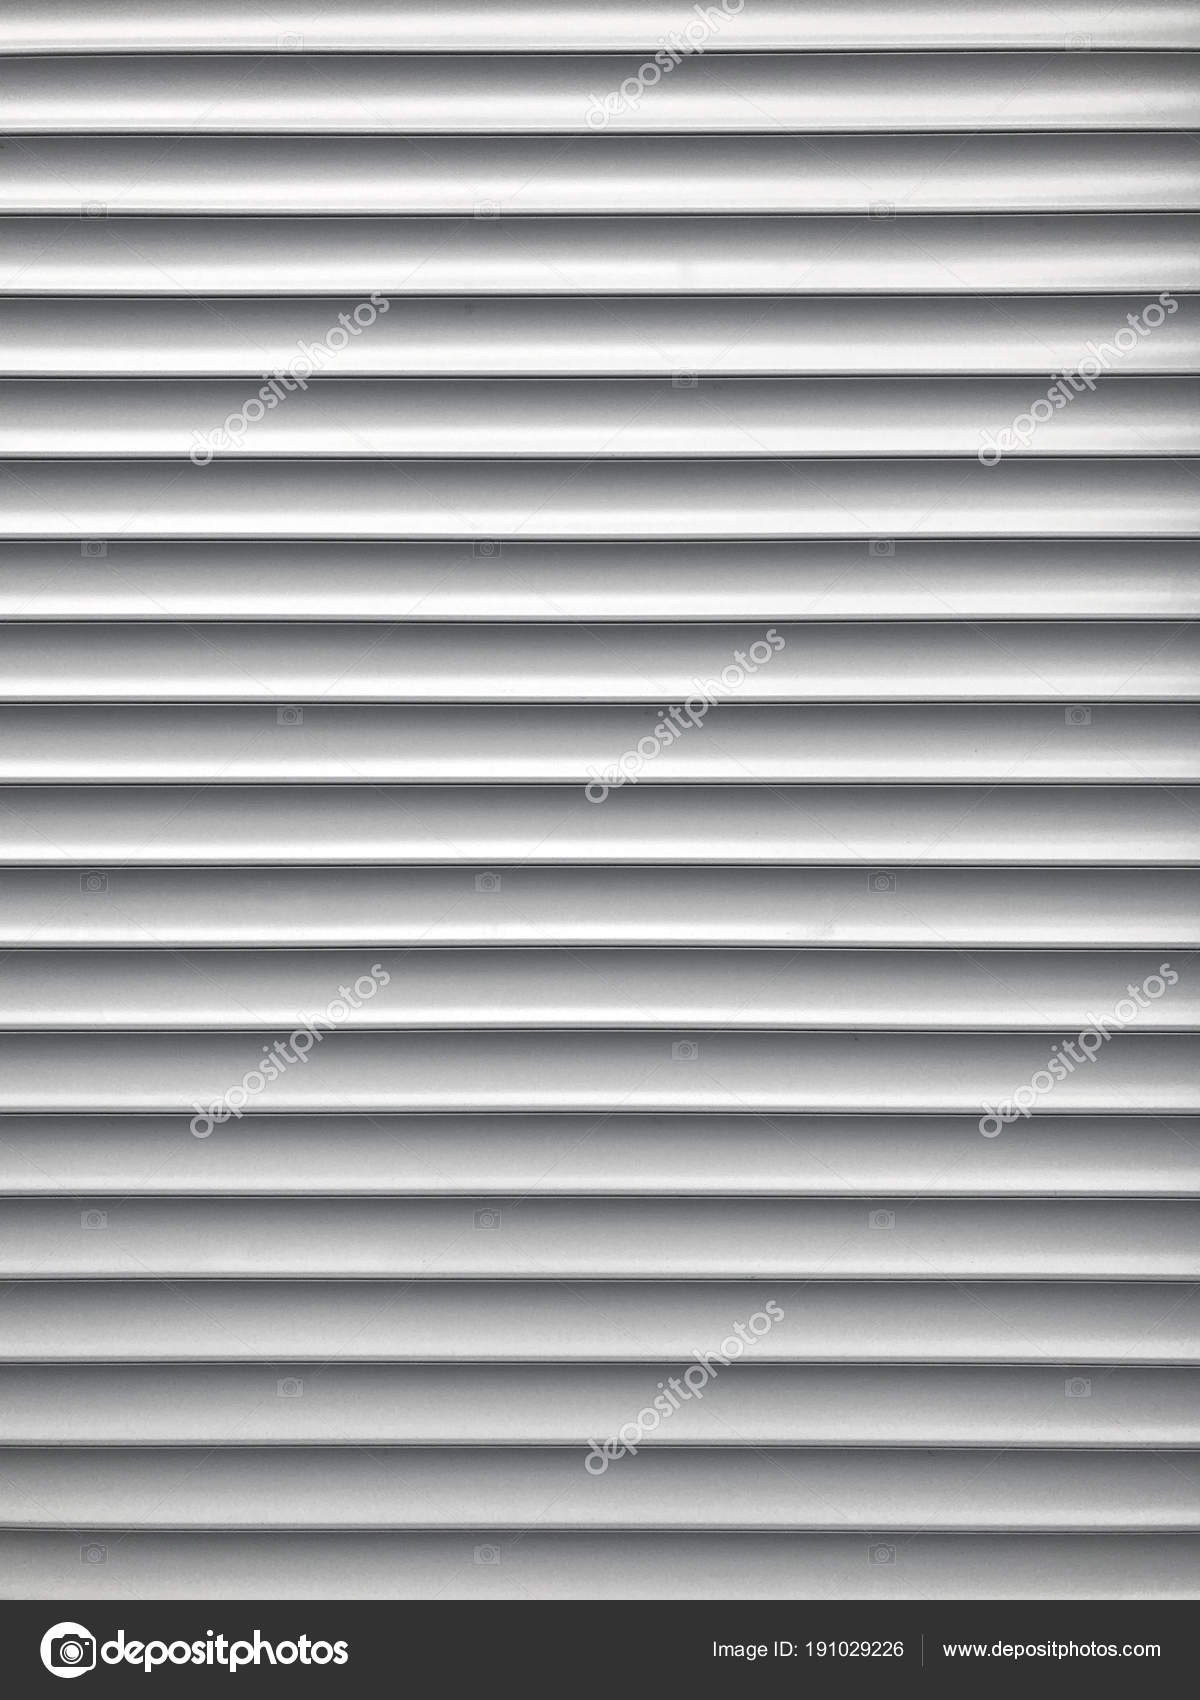 at alamy image the blue photo photos images metal window stock close blinds